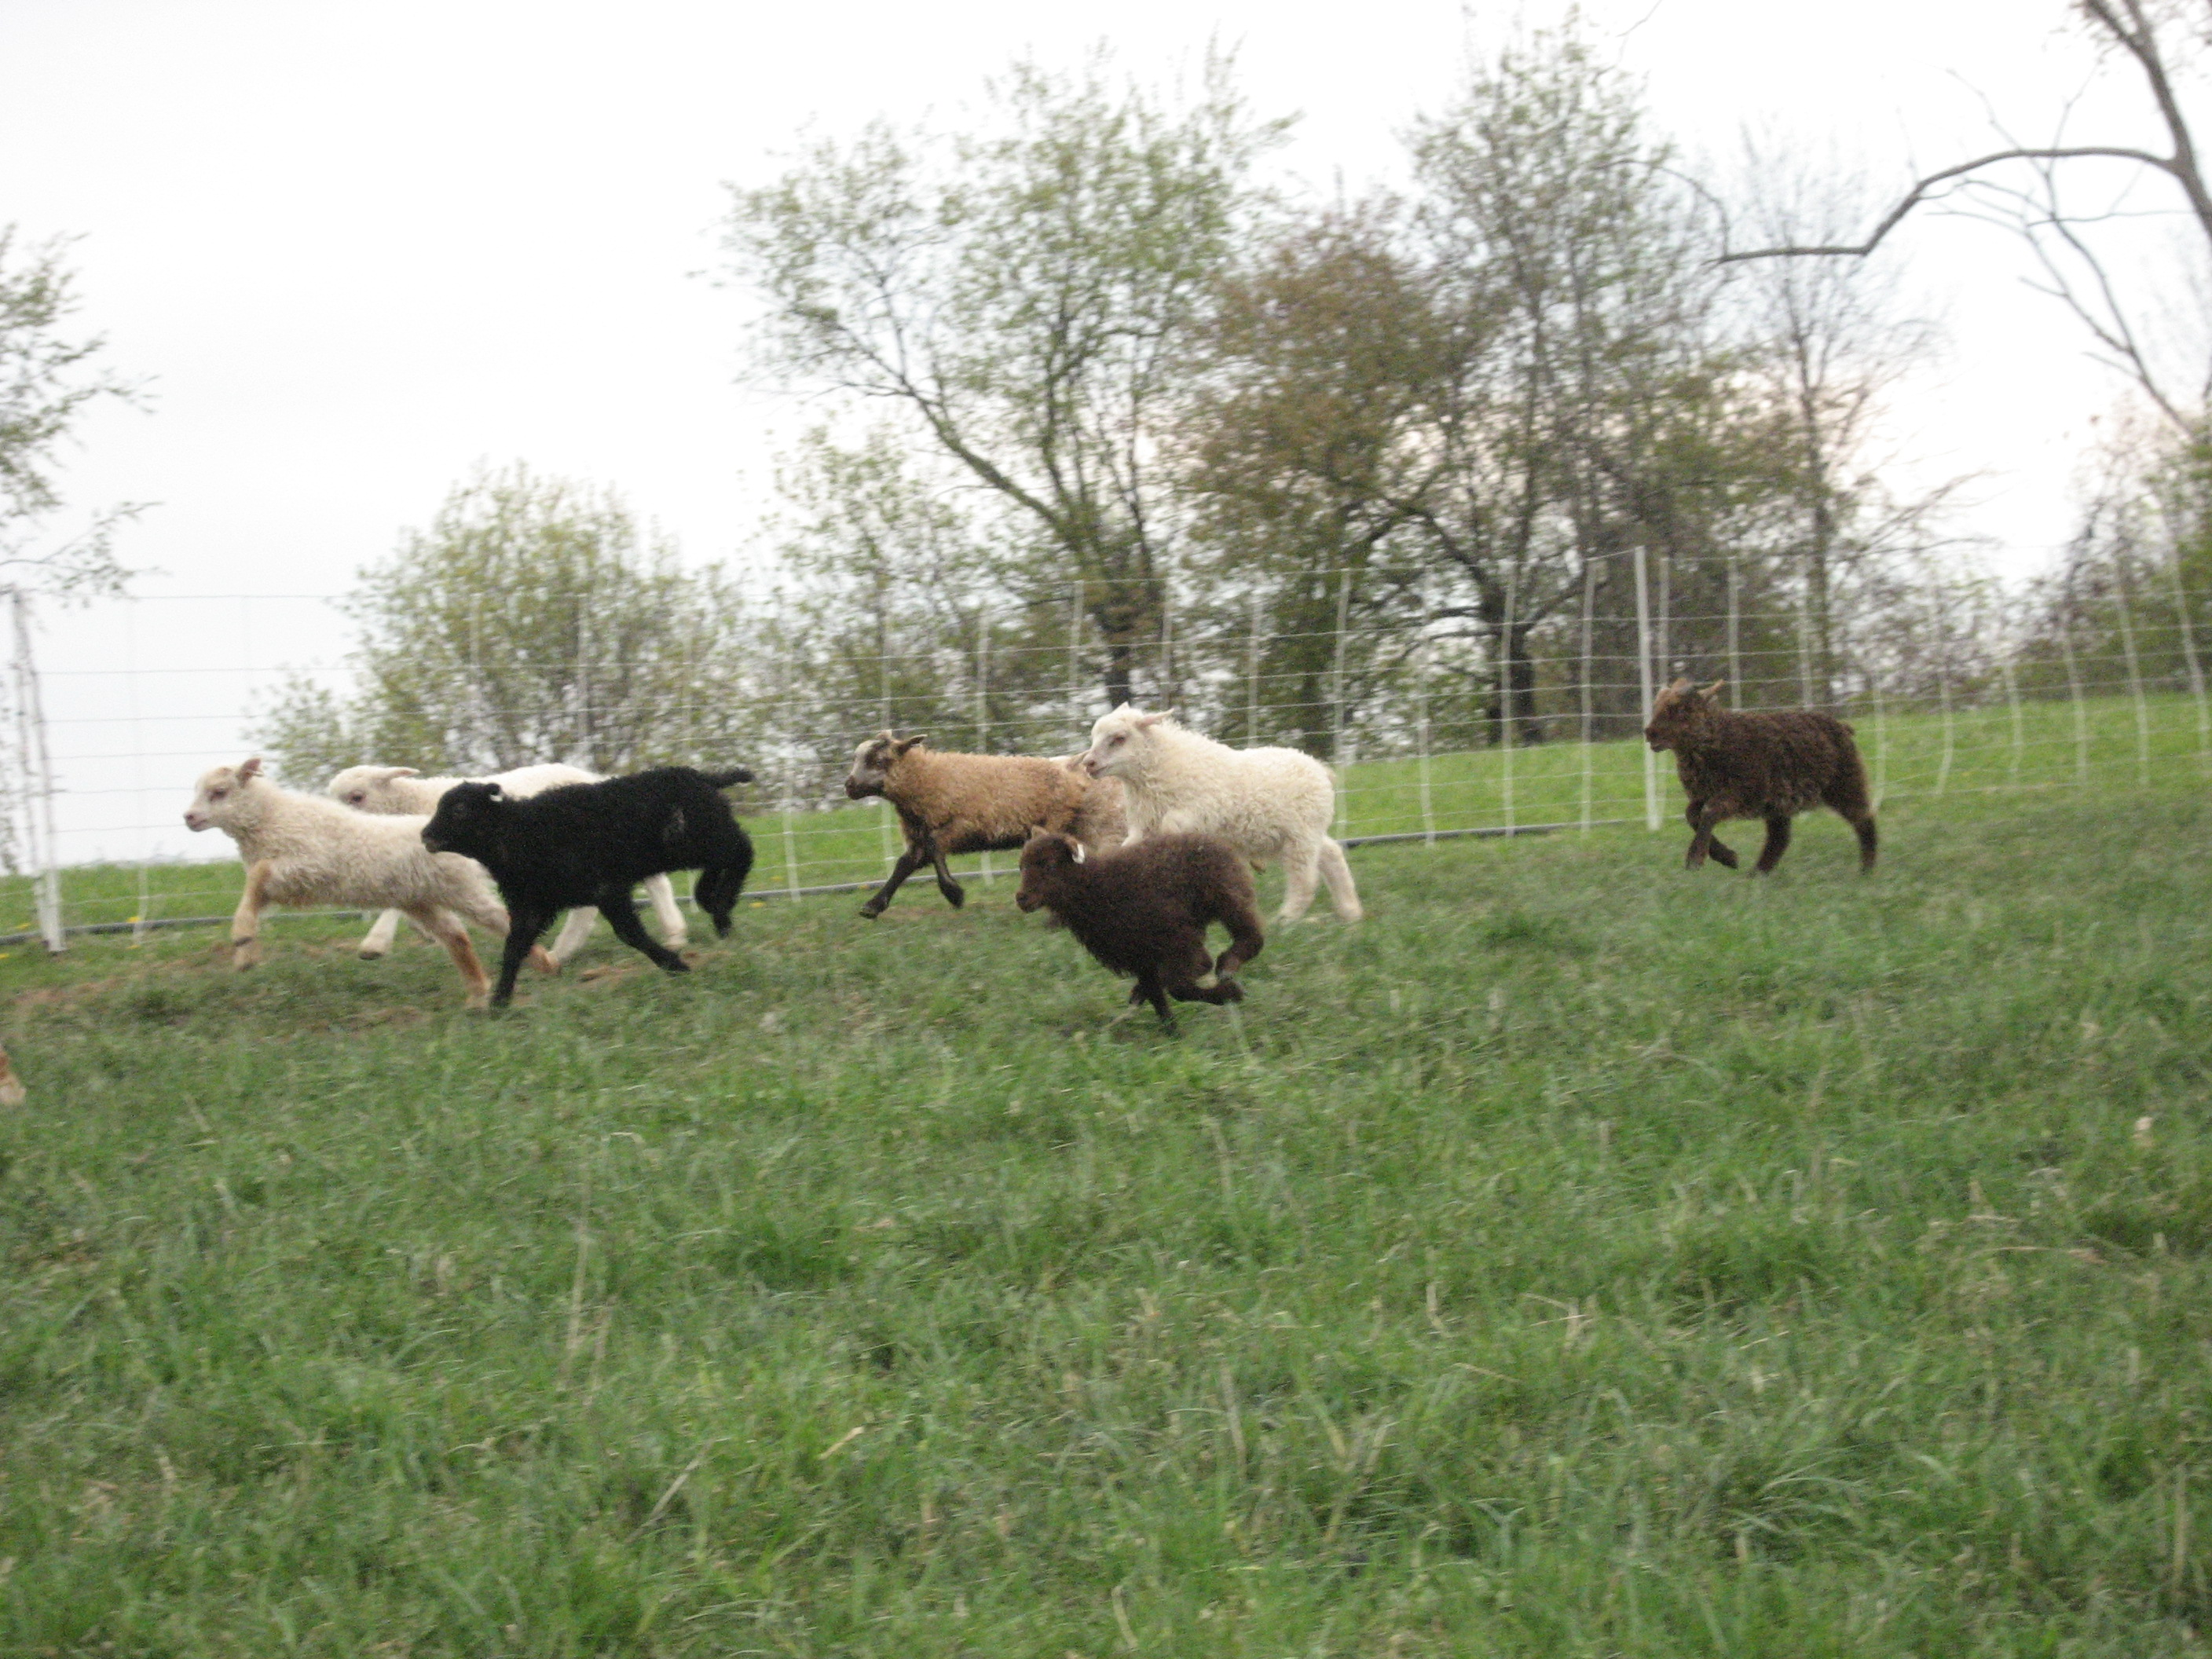 runninglambs.jpg